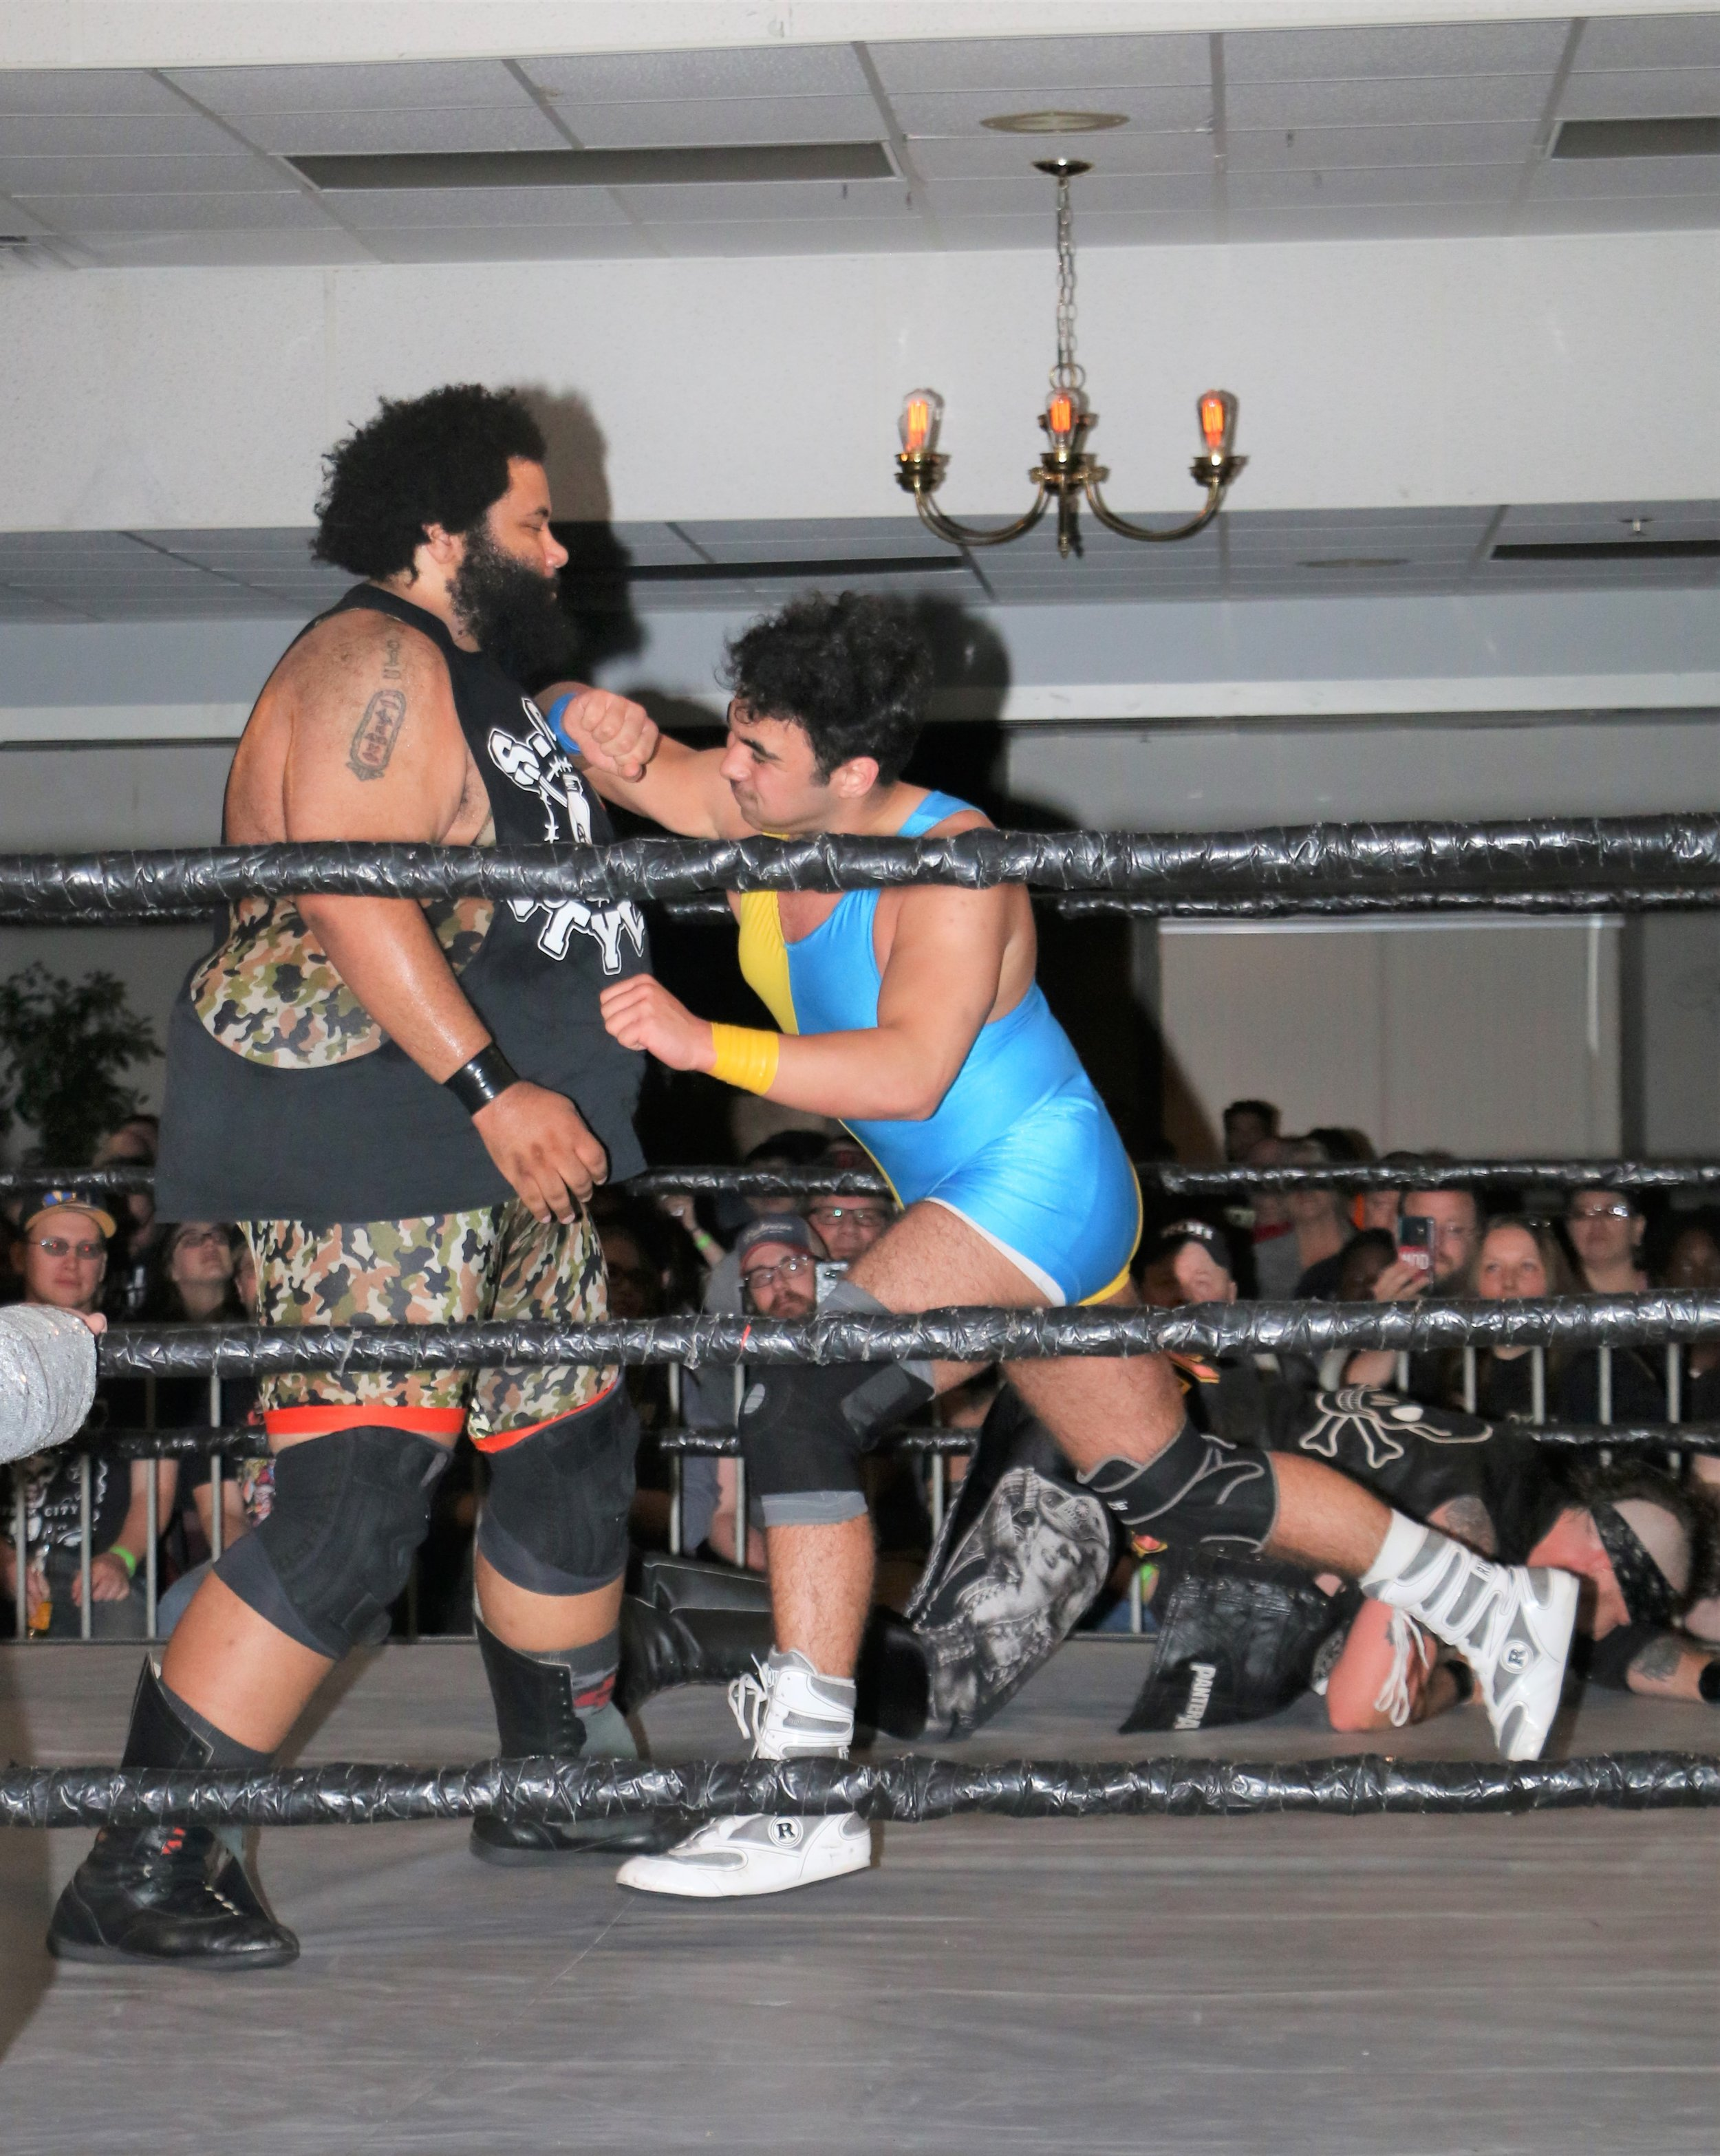 Kal Herro delivers a forearm to Backwoods Brown during the six-man tag team match.